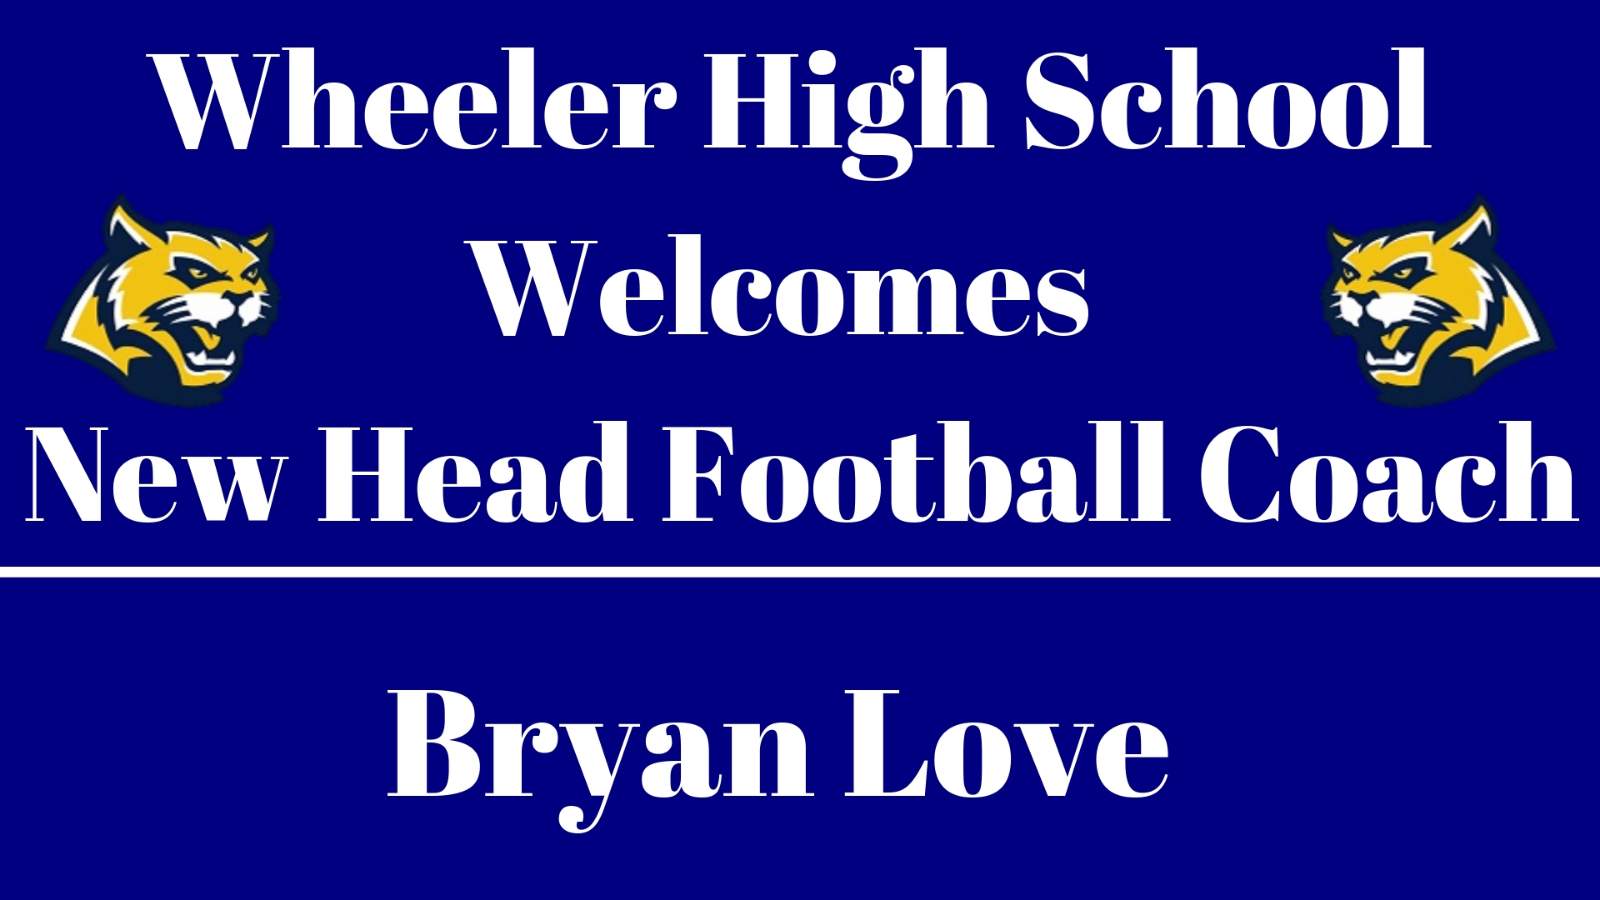 New Head Football Coach Bryan Love